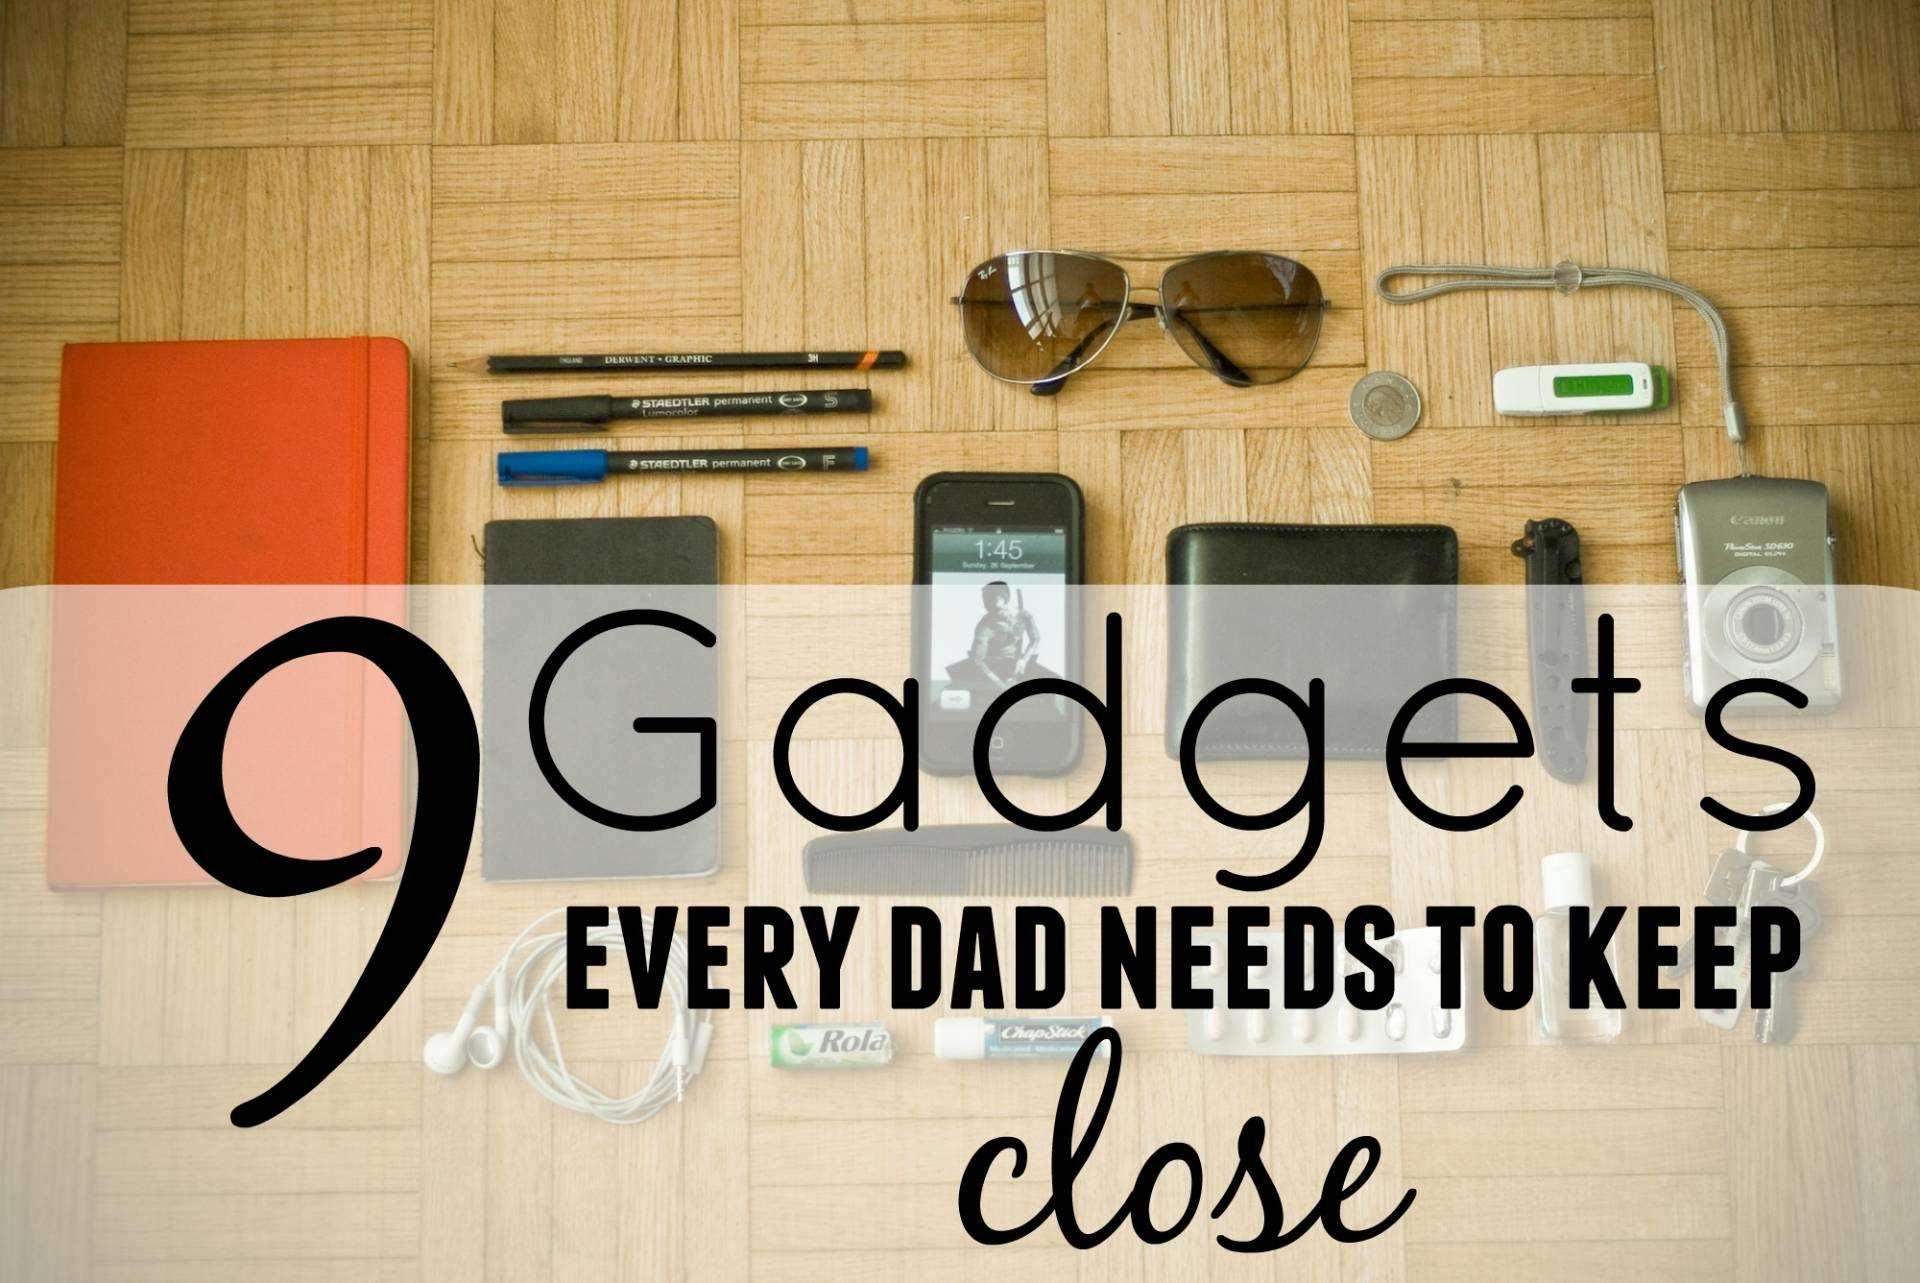 9 Gadgets Every Dad Should Keep Near By + WIN an iPhone 6s or Samsung S6, Meem memory cable%, lifestyle%